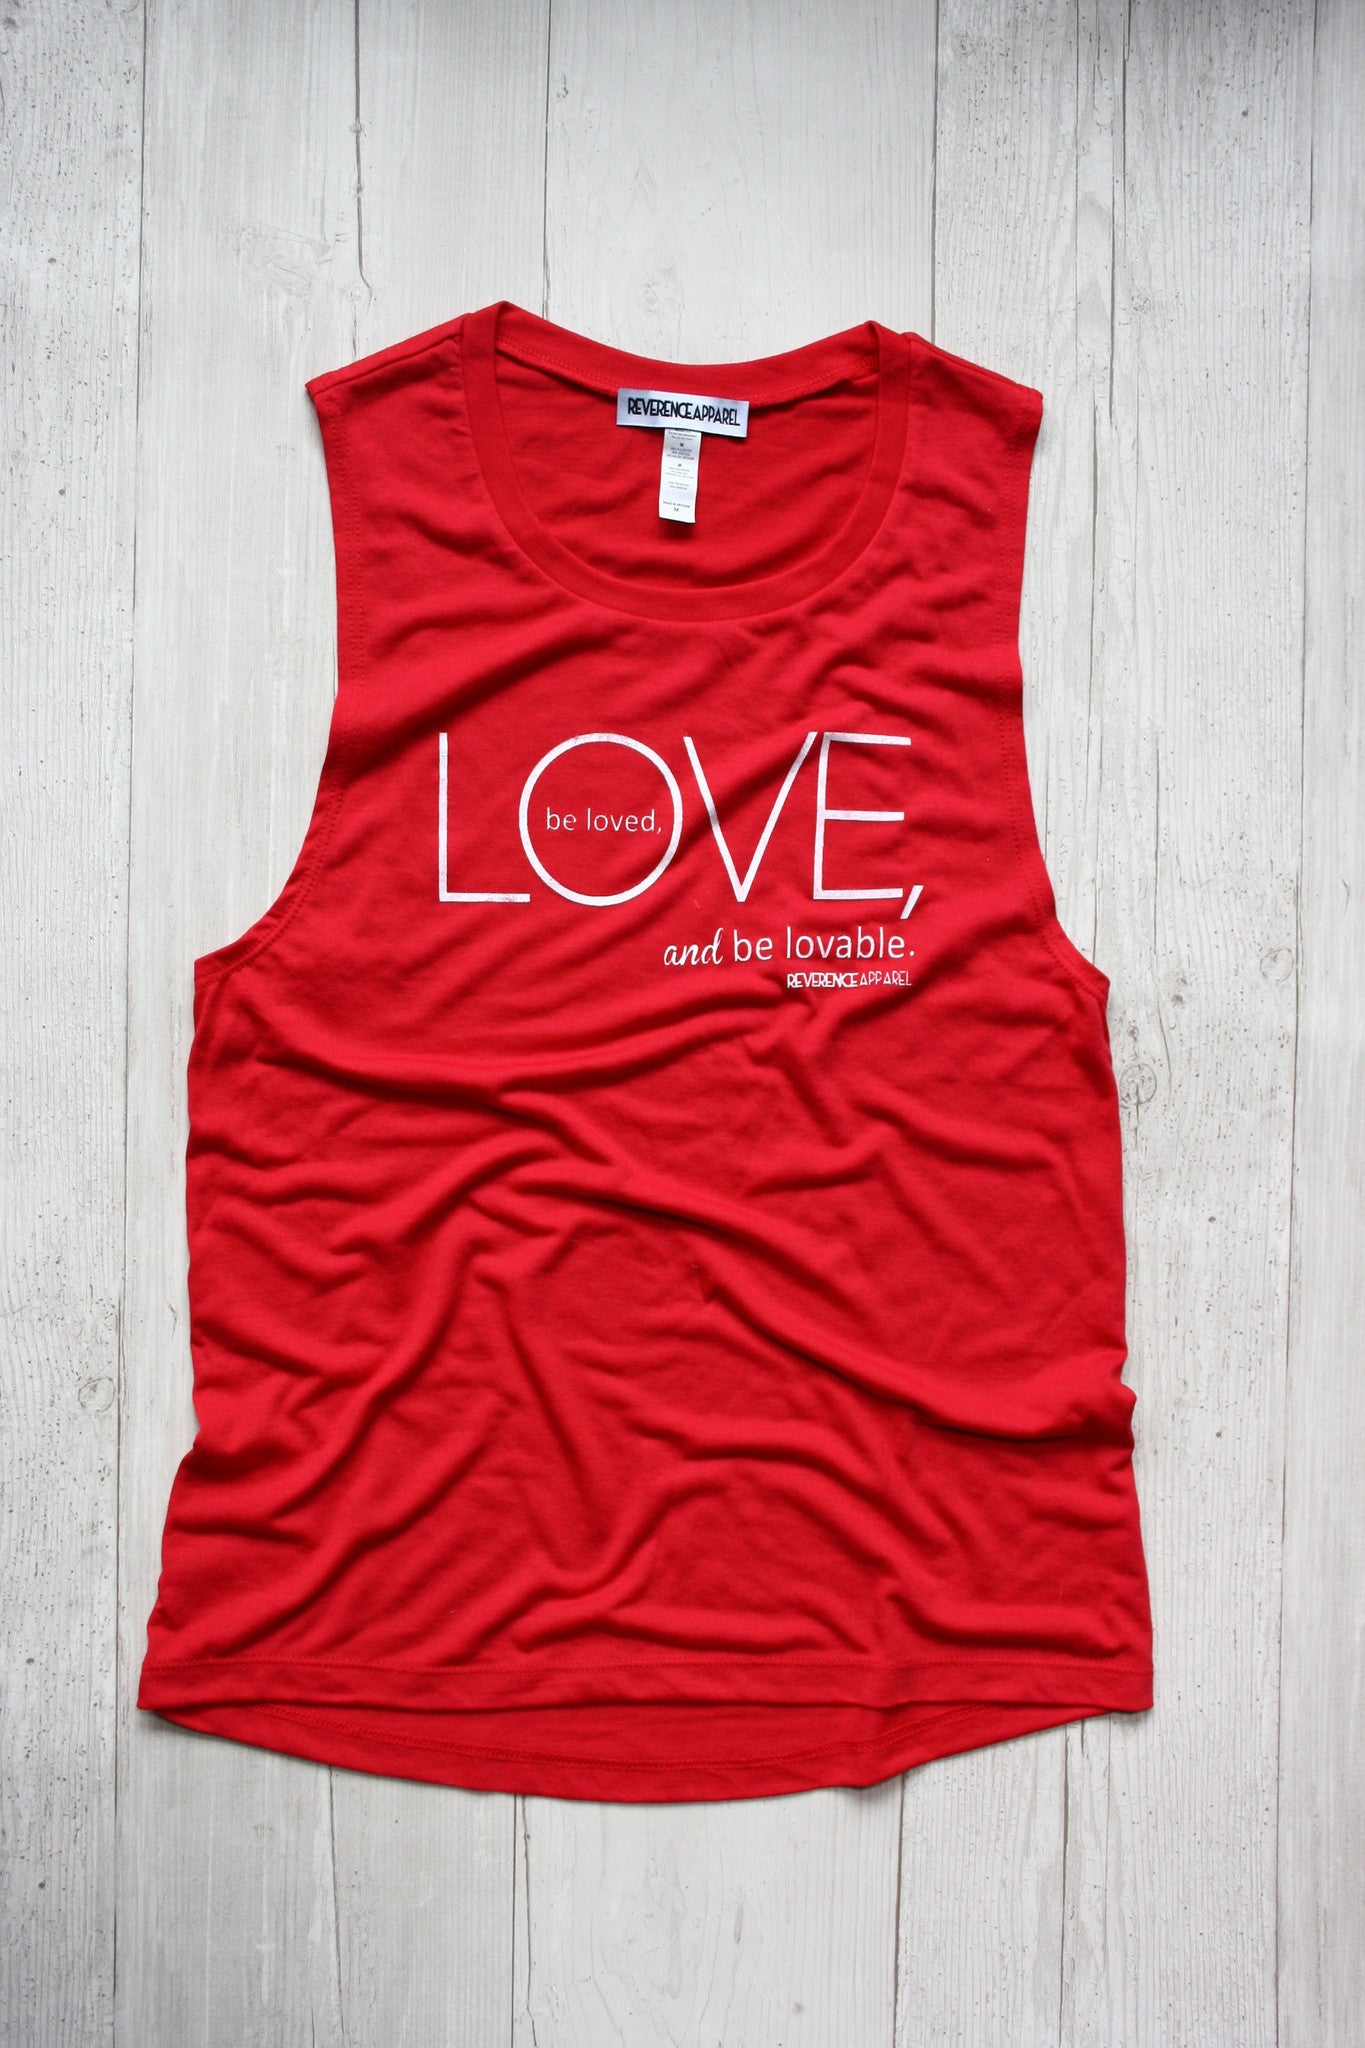 Love, Be Loved, Be Loveable Yoga Muscle Tank Top, , Tank, Reverence Apparel, Reverence Apparel   - 1